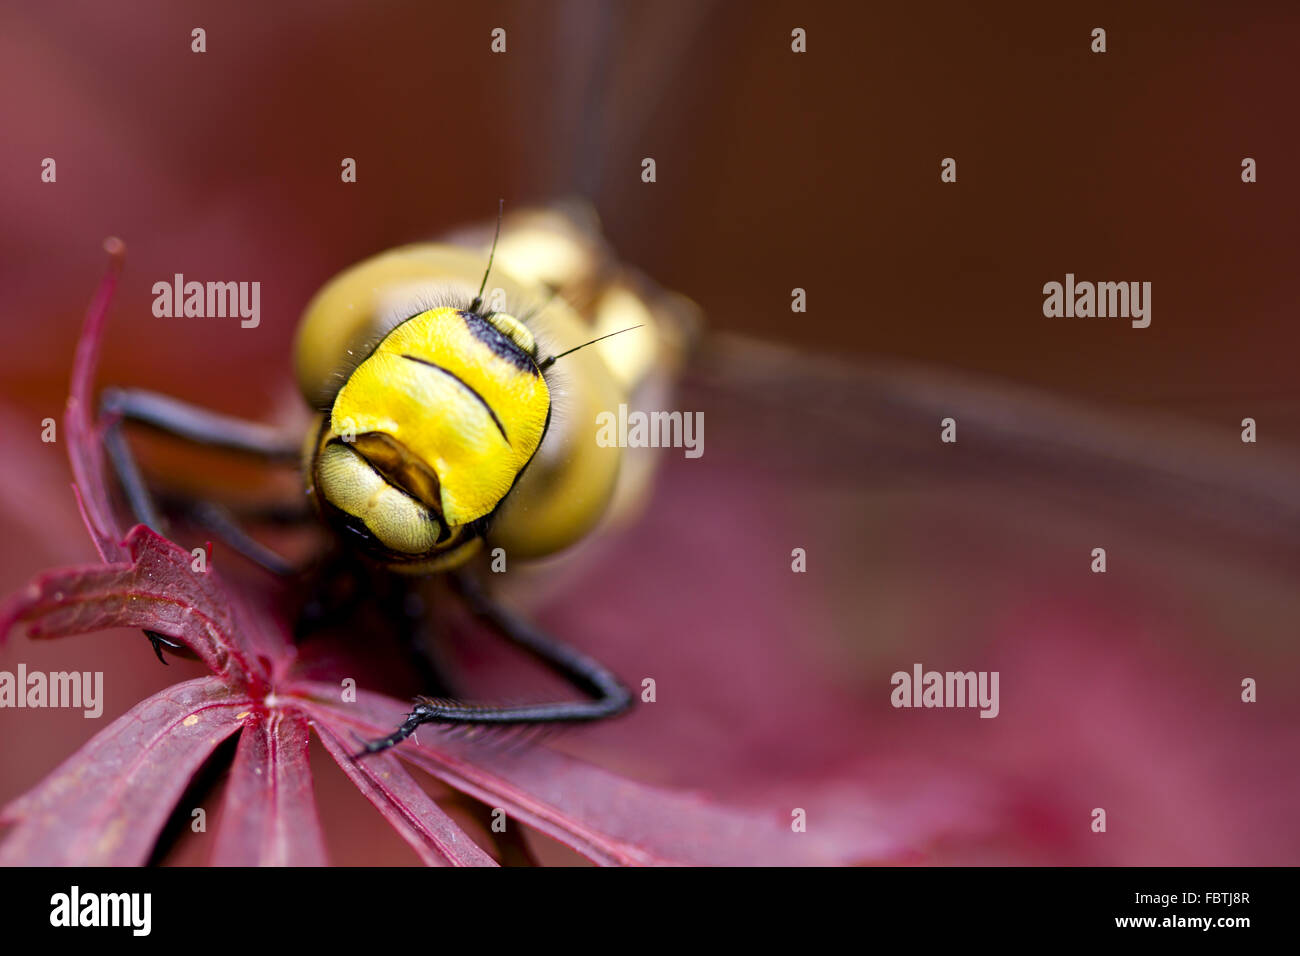 Extreme macro shot of a dragonfly. - Stock Image